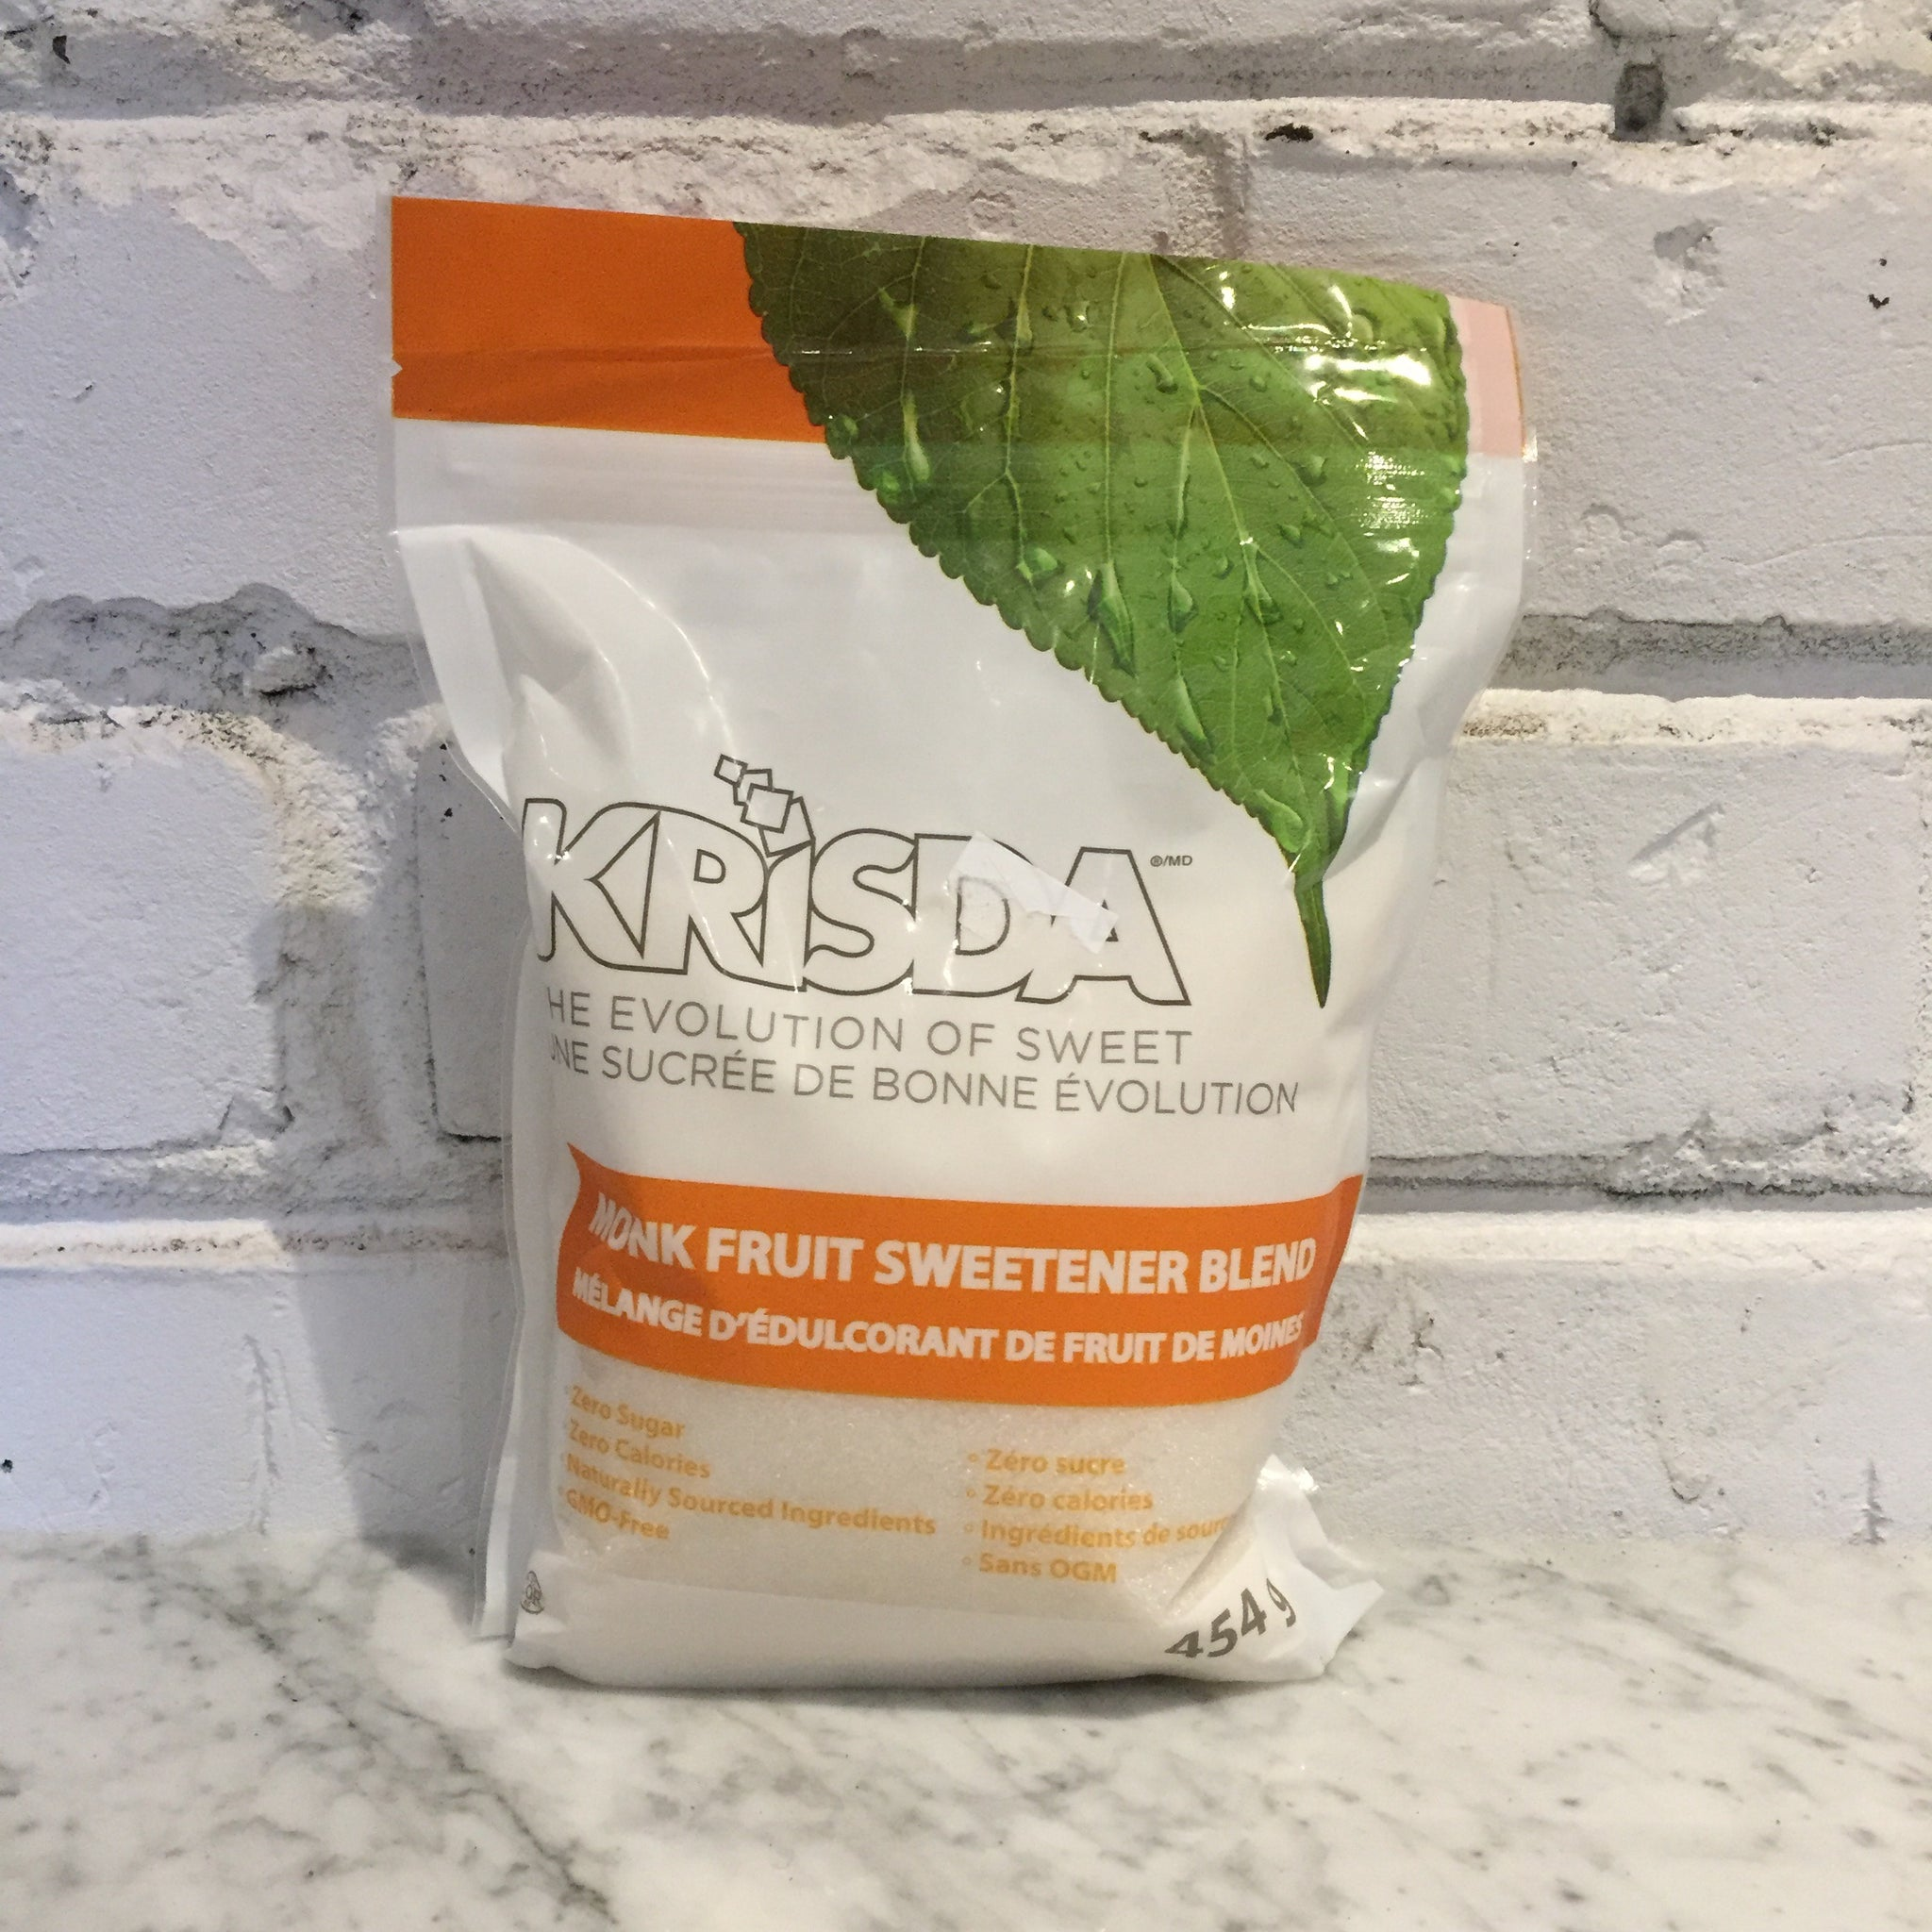 Krisda Monk Fruit Sweetener Blend